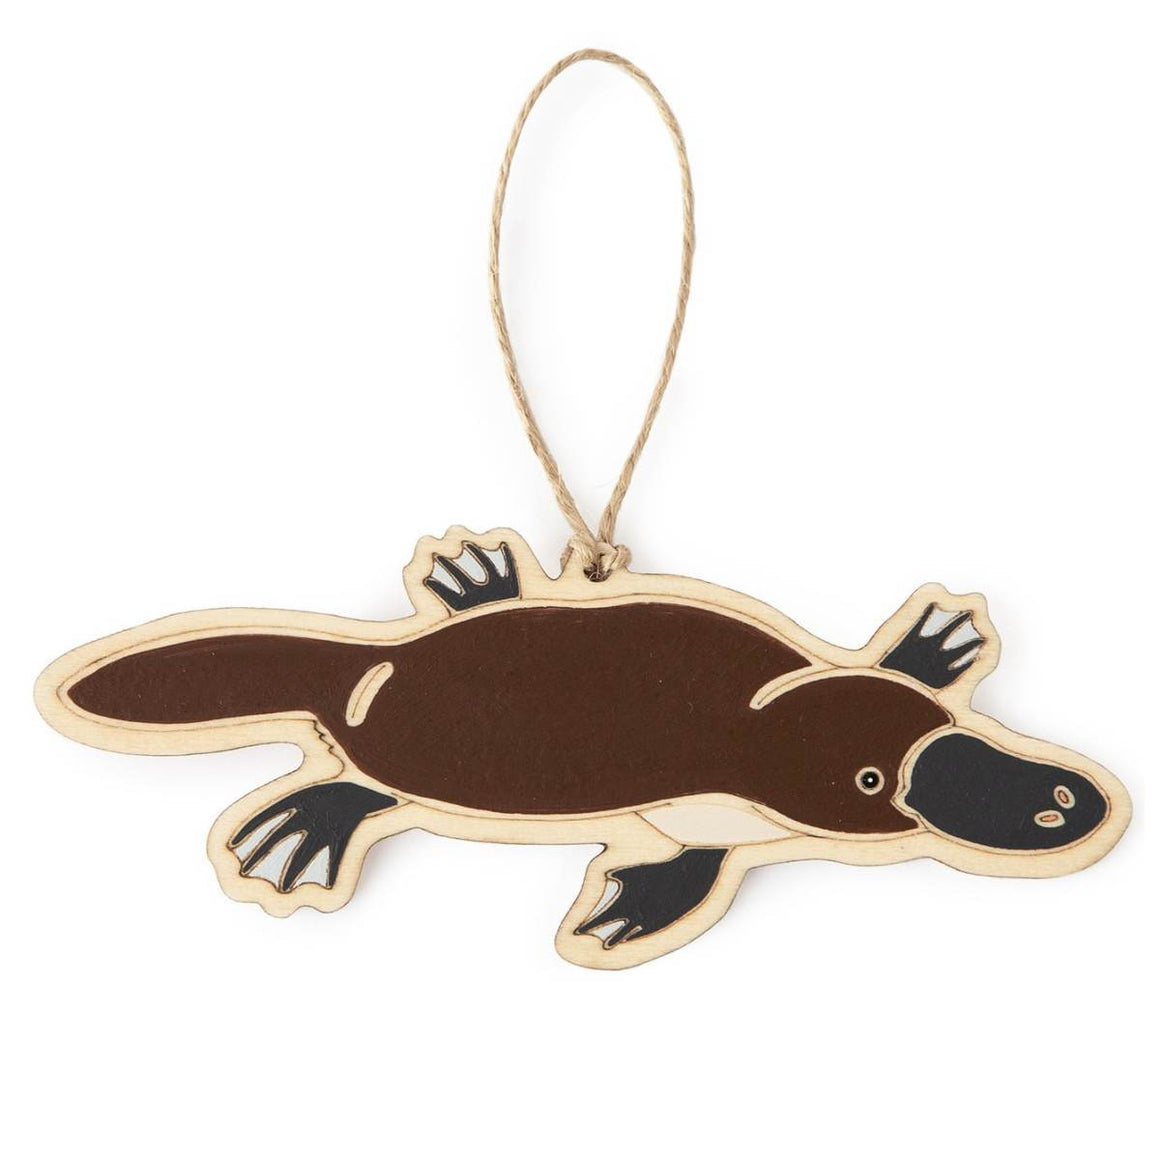 A hanging ornament in the form of a Platypus. Laser Etched flat wood is adorned with brown, black and white hand painting. A Jute string is attached